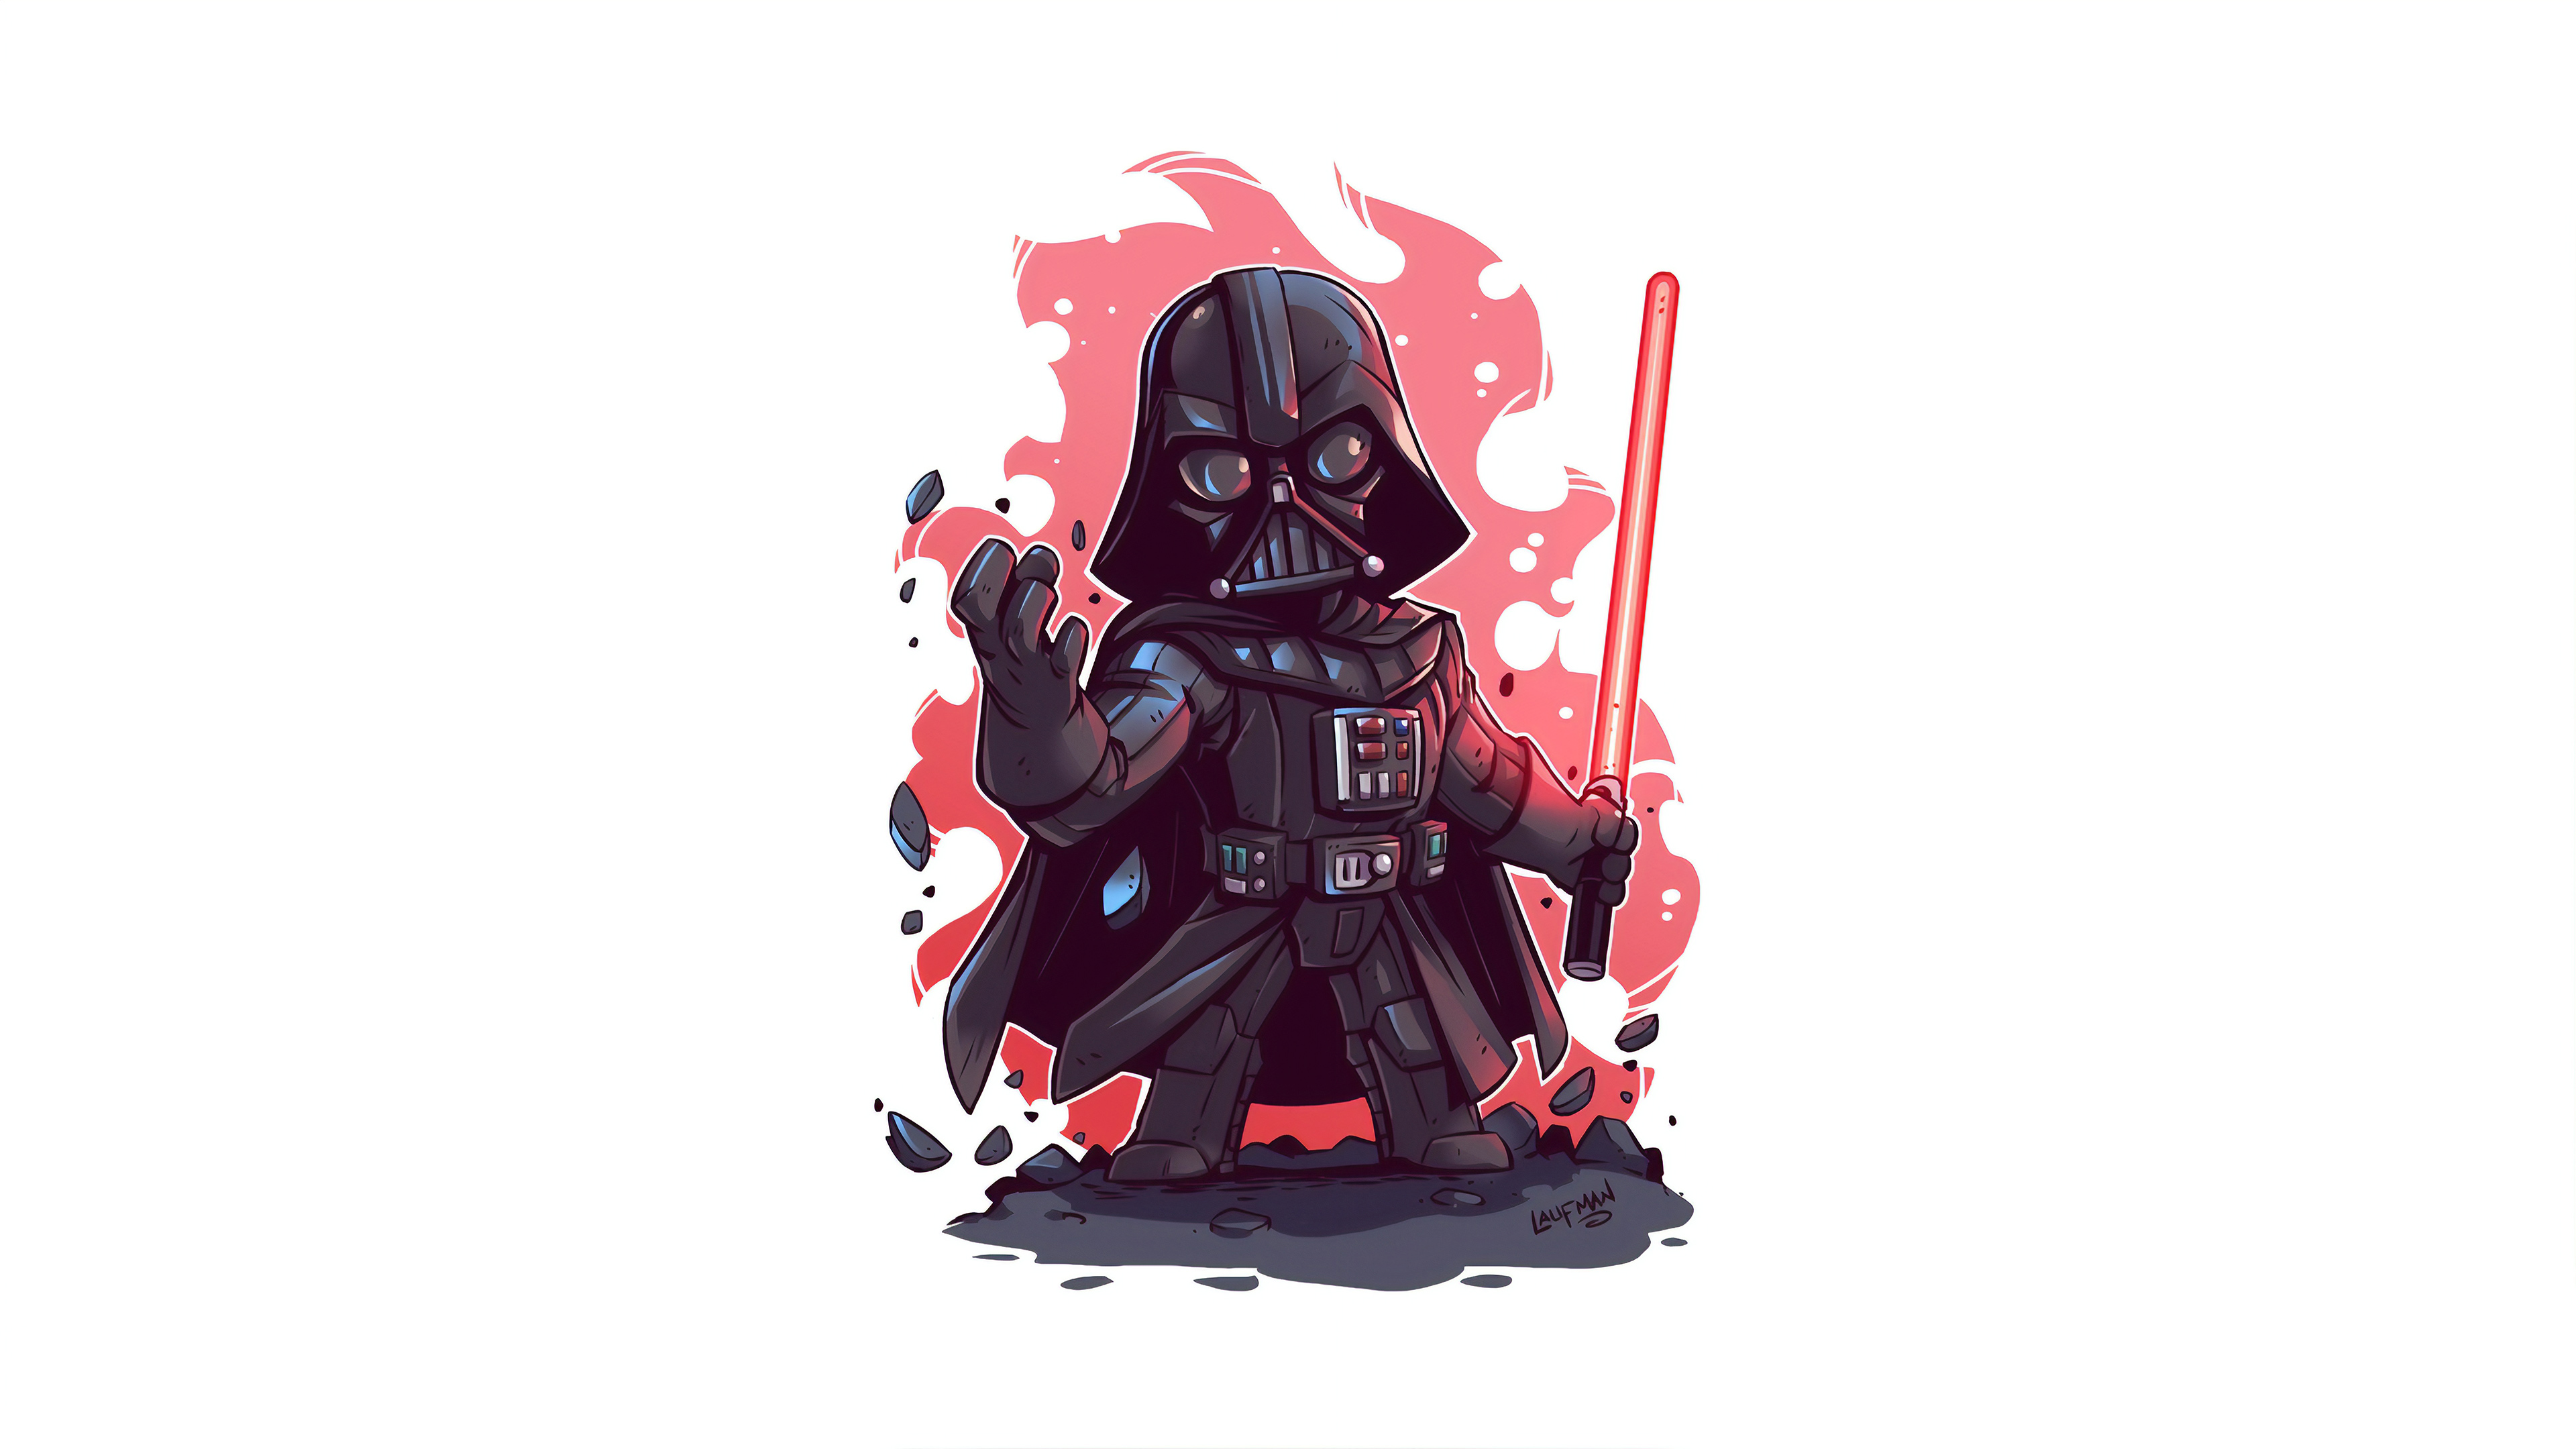 Wallpaper 4k Darth Vader Minimal Art 4k 4k Wallpapers